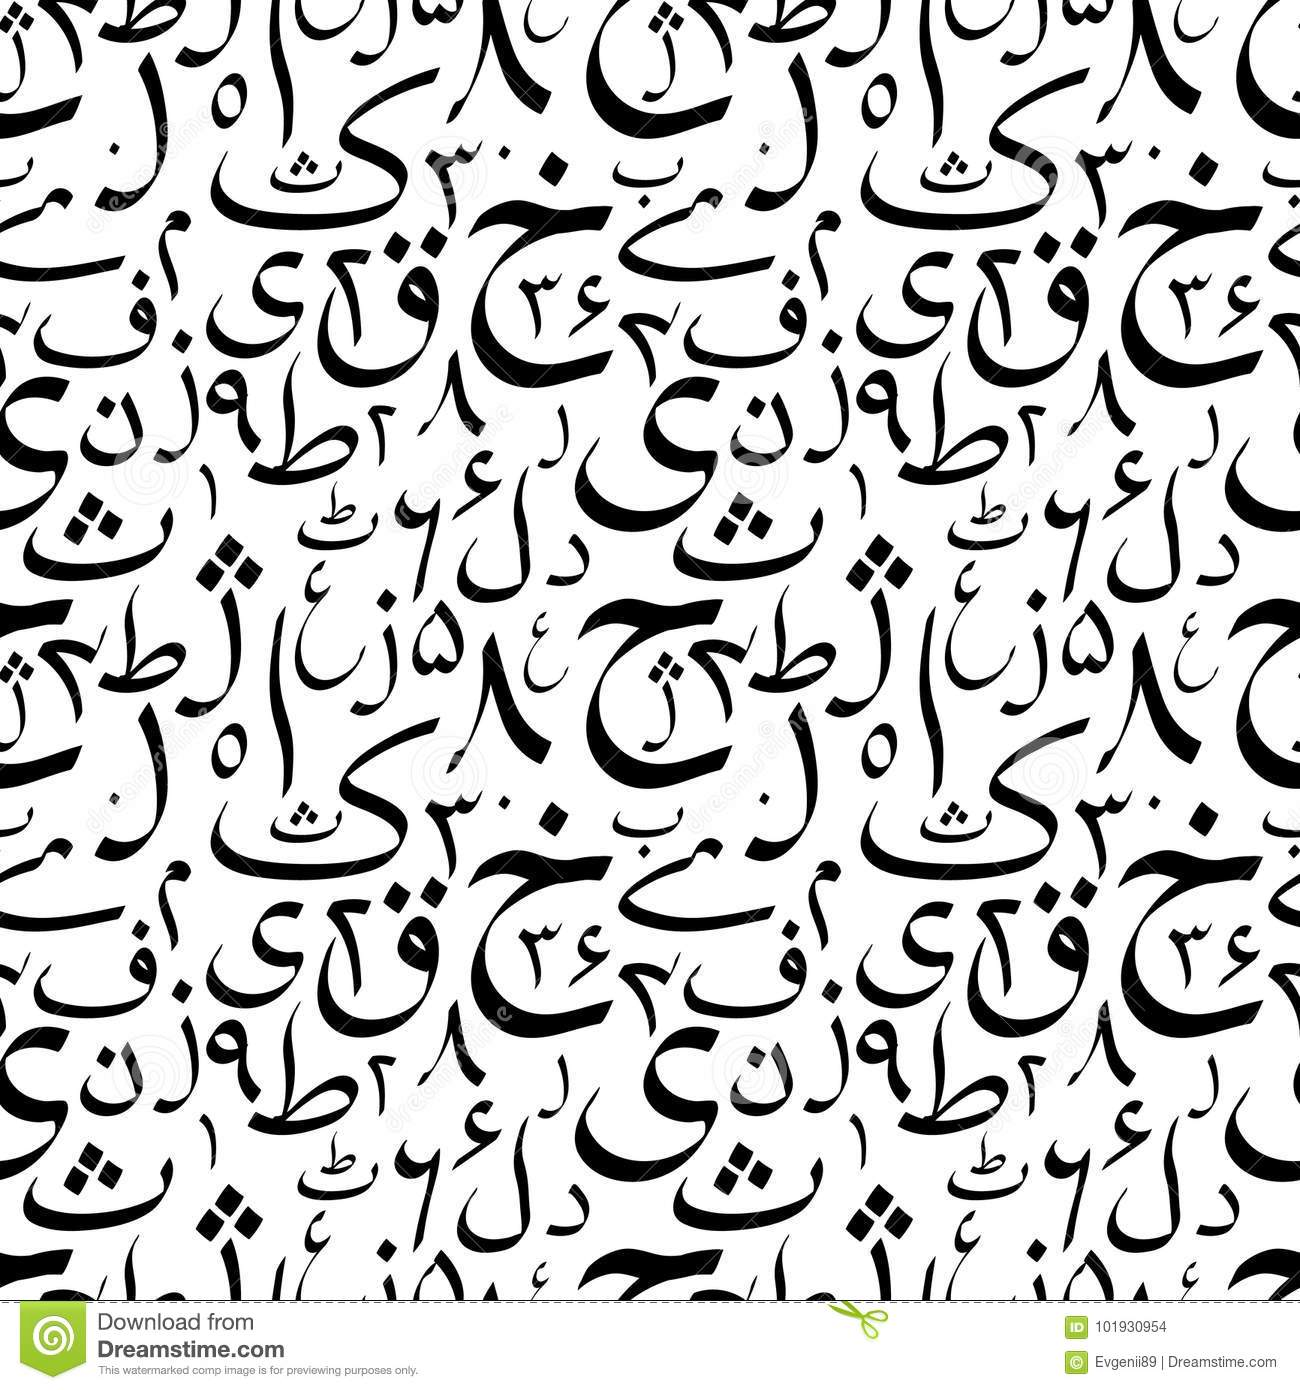 Black Calligraphy Urdu Letters On White, Abstract Seamless Pattern